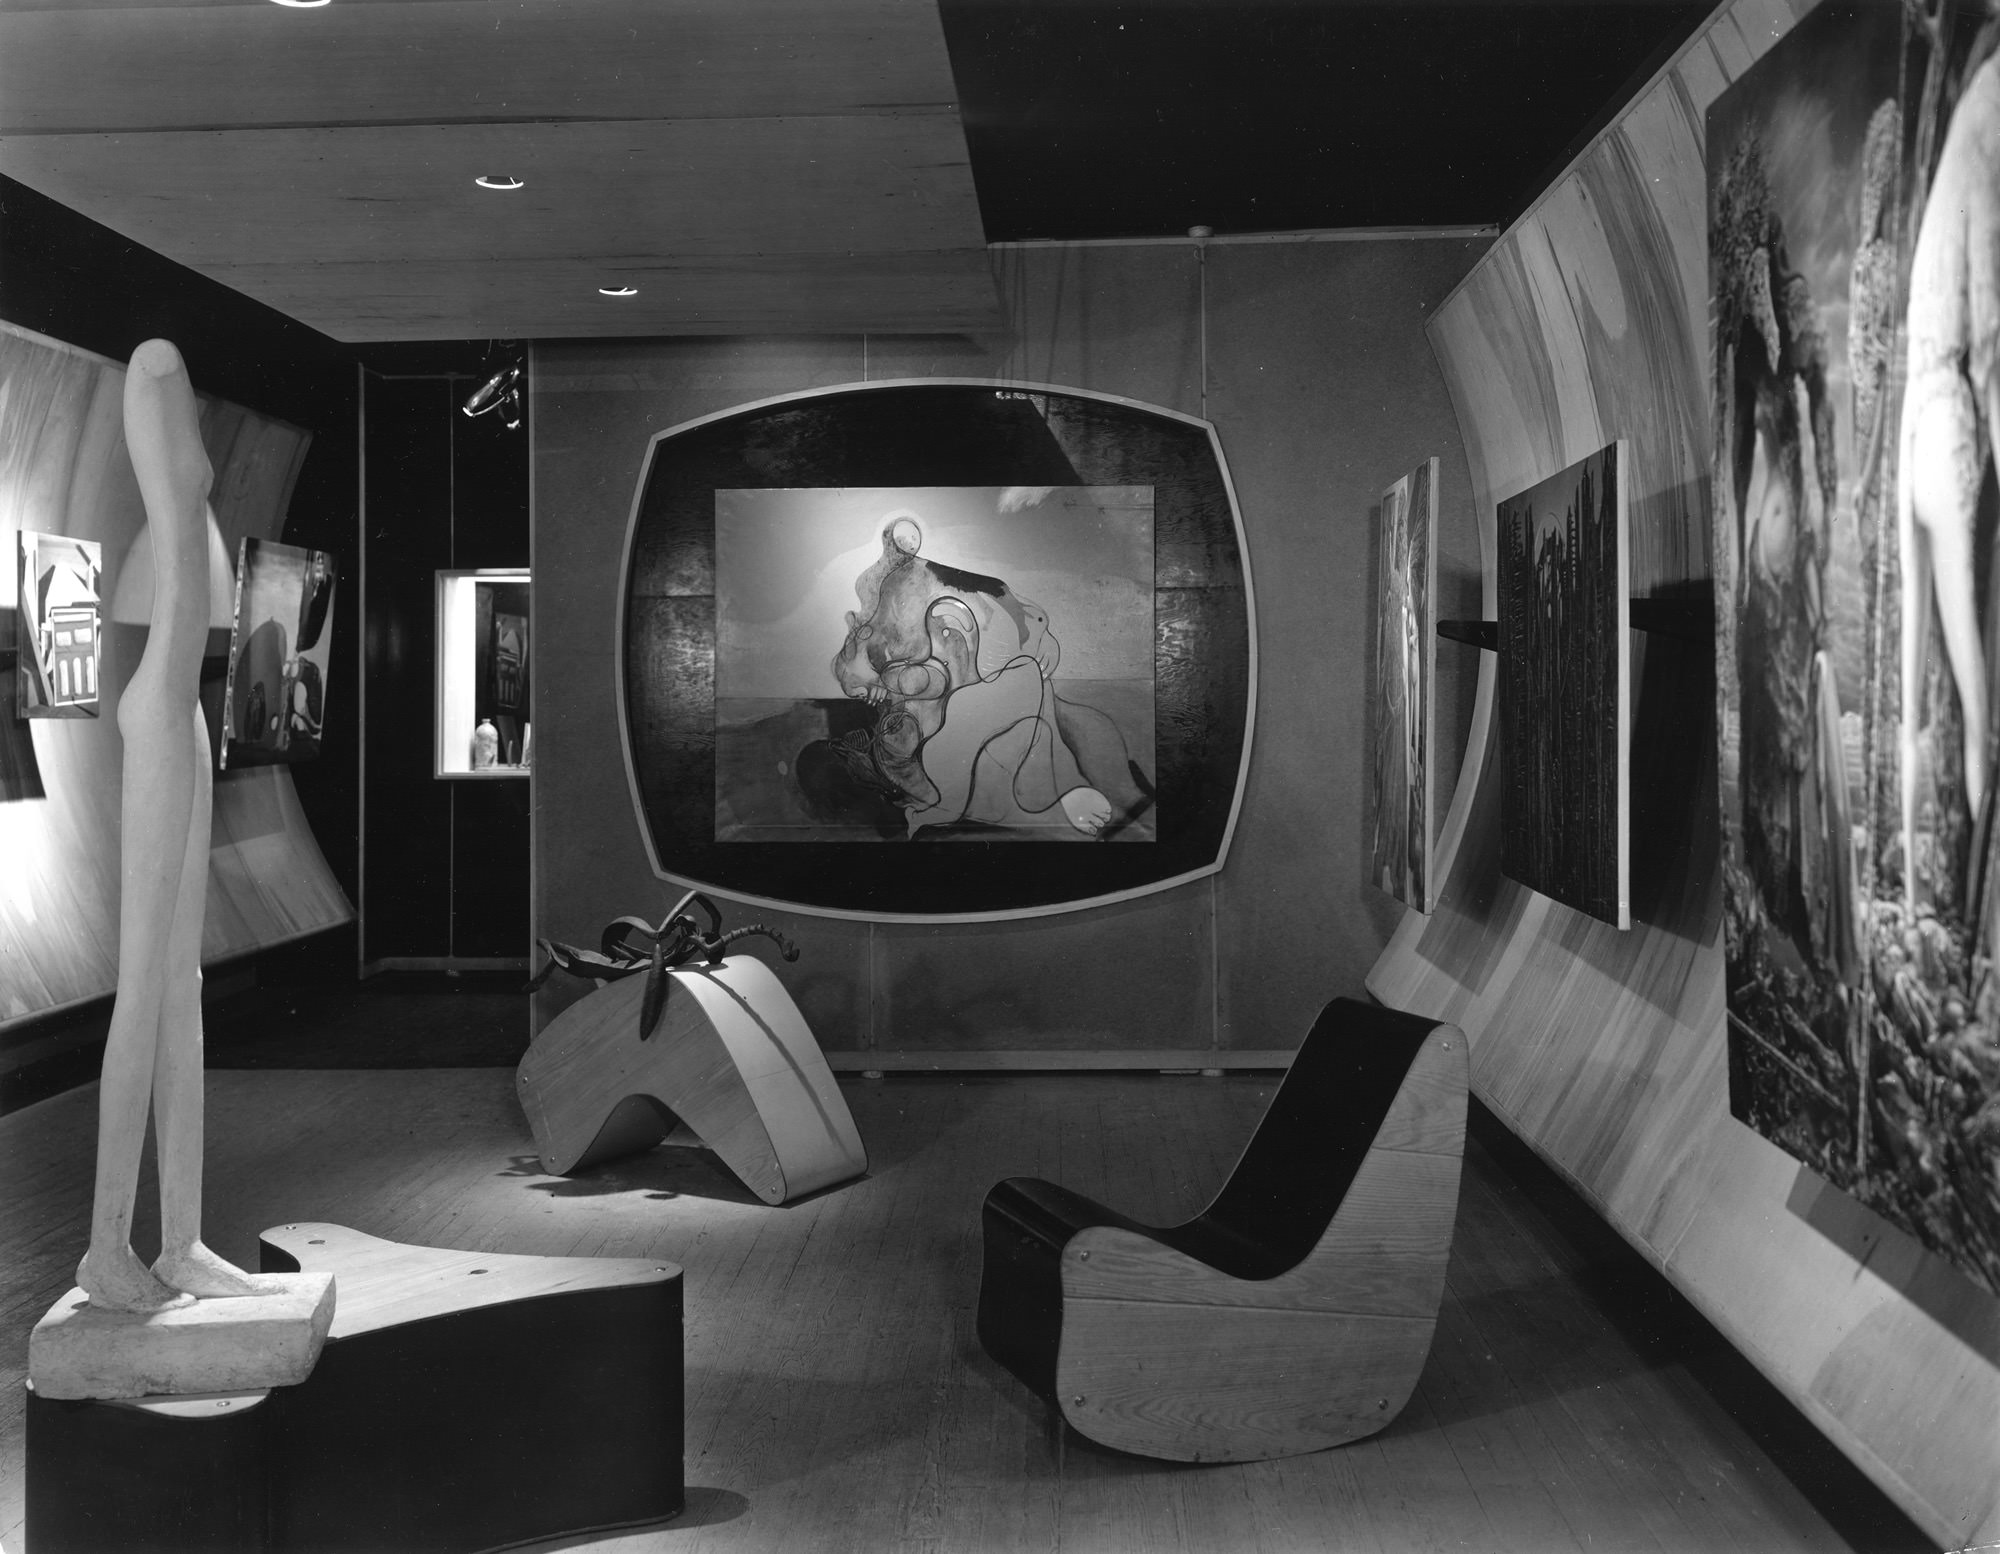 Art of This Century Gallery, 30 W. 57th Street, New York City, 1942 — galería diseñada por Frederick Kiesler.